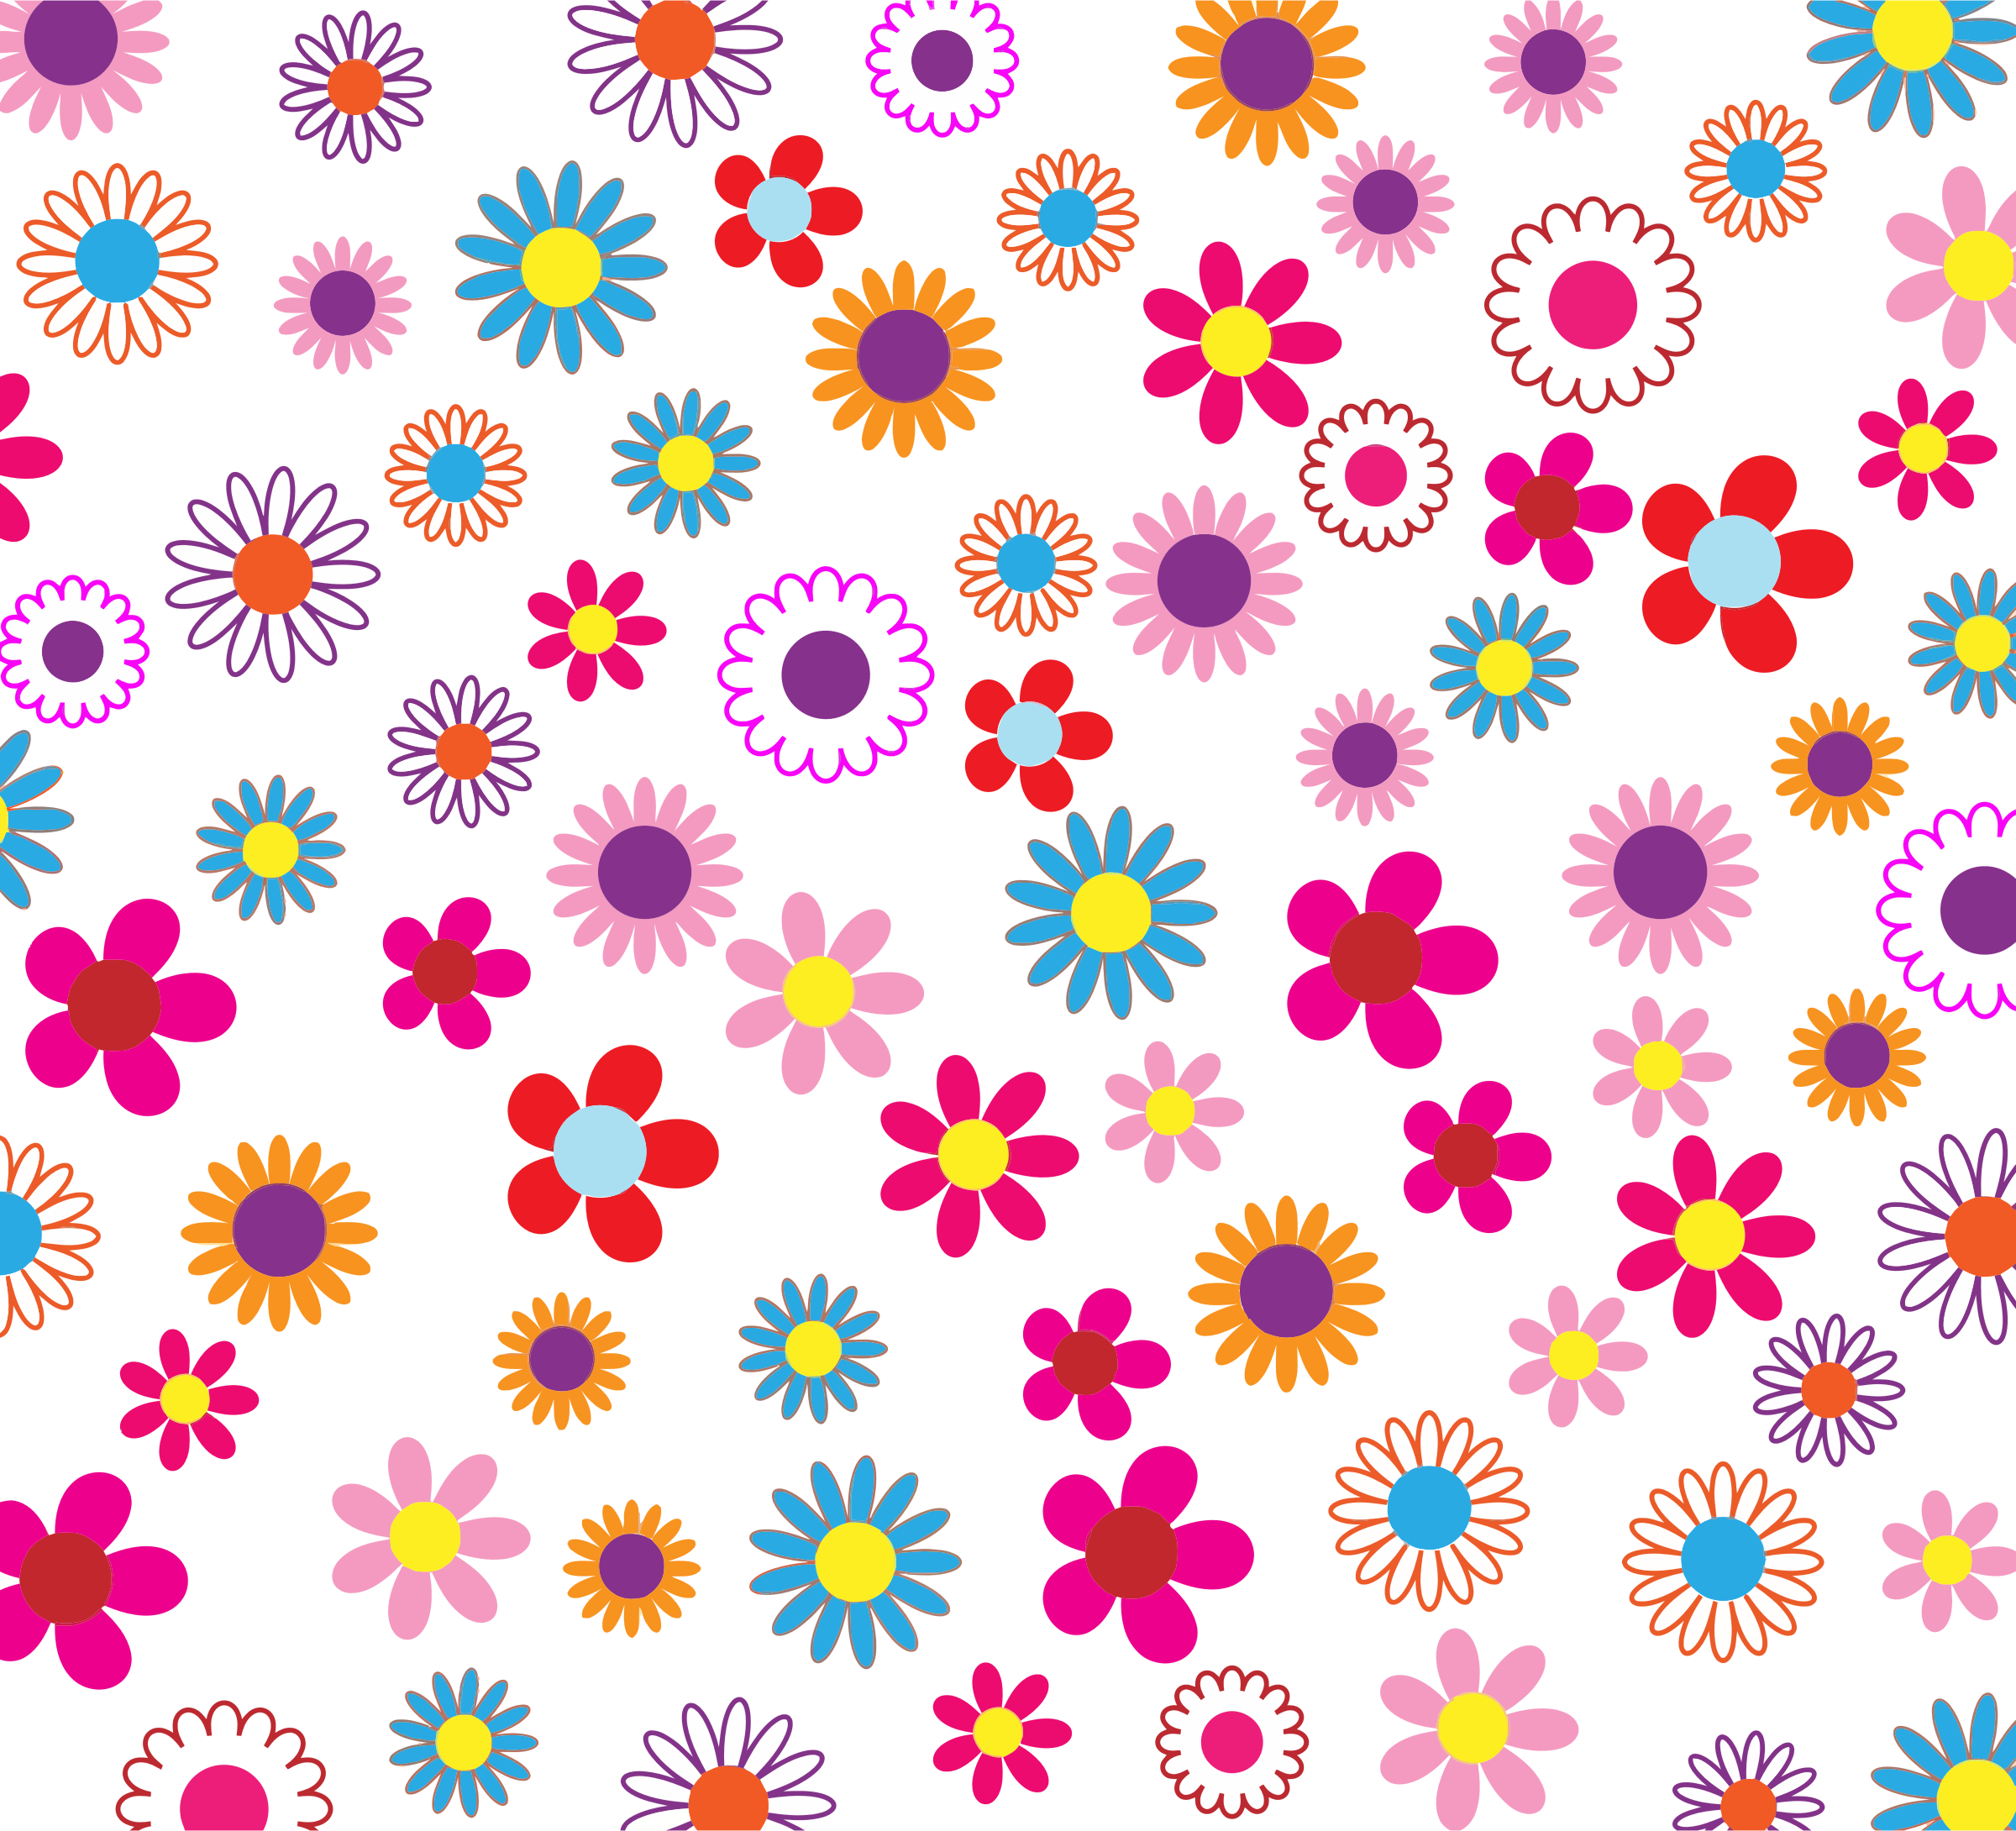 colorful floral background patterns -#main